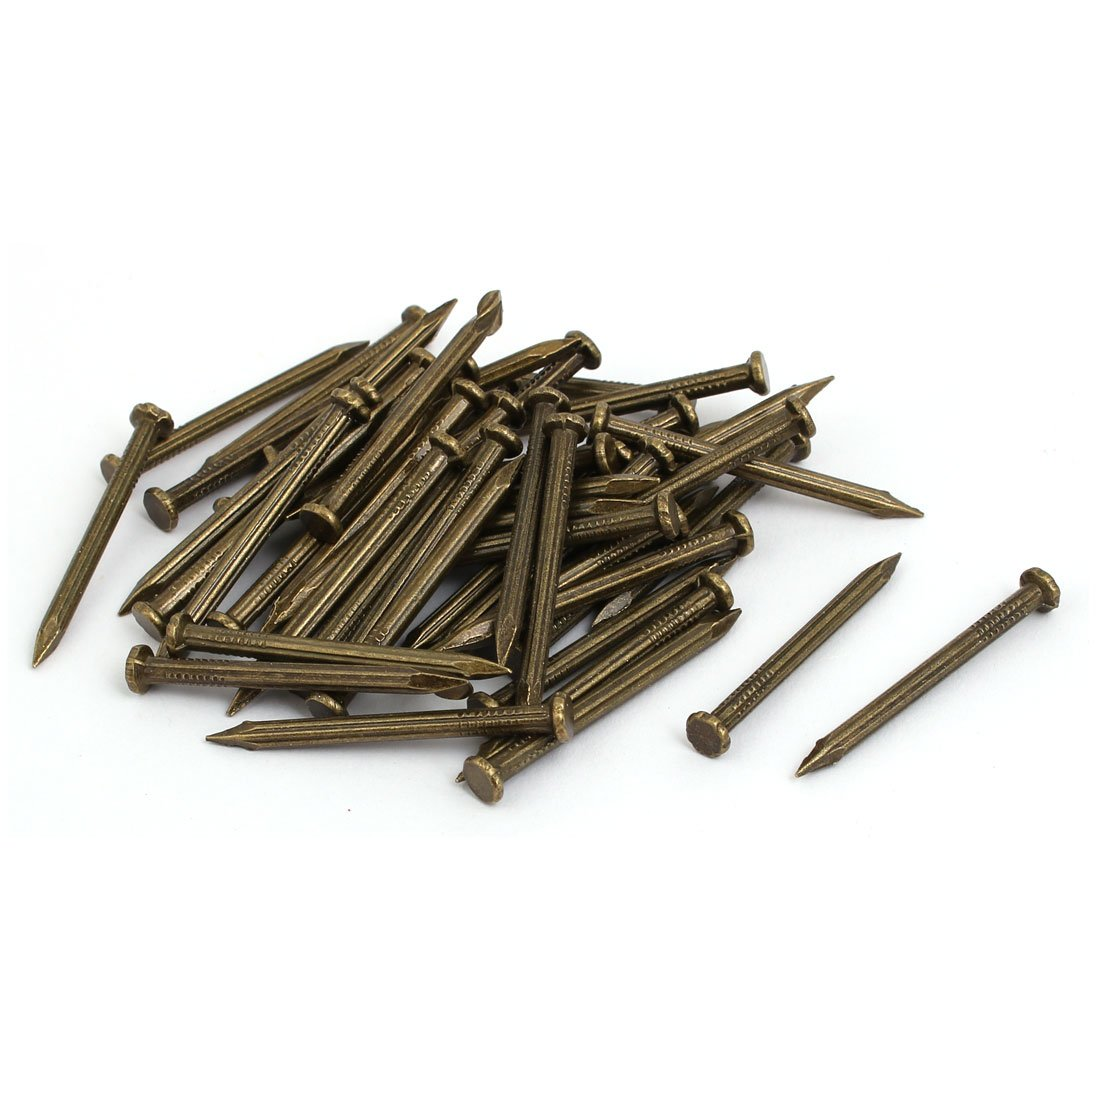 uxcell 3mmx40mm Carbon Steel Point Tip Cement Nail Bronze Tone 50pcs